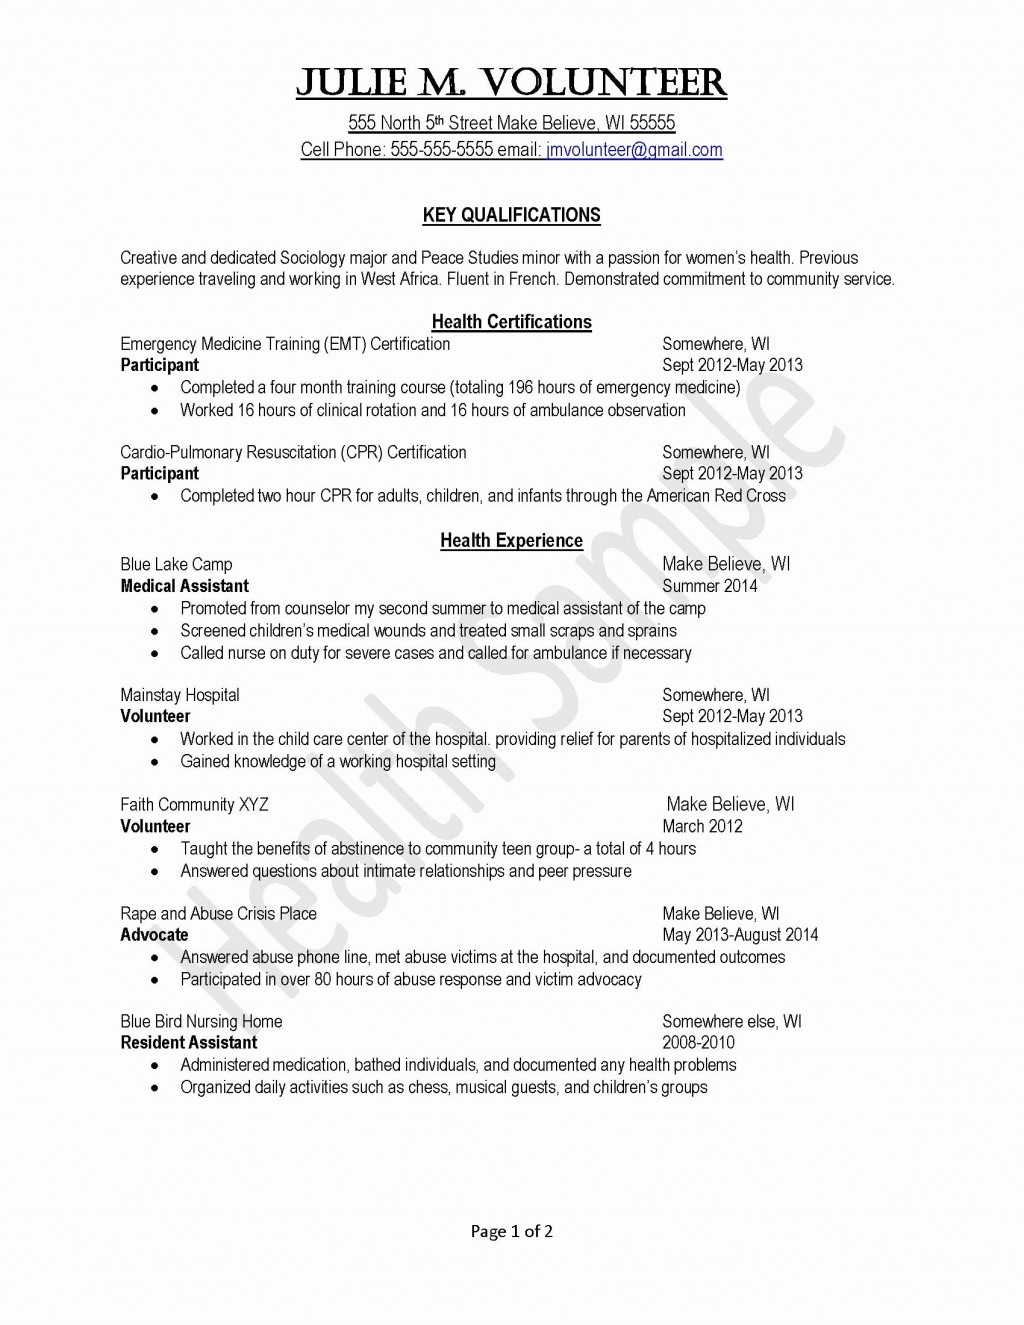 003 Volunteer Experience Essay Elementary School Resume Free Community Work Hospital Coordinator Job Description Church Example Coordinatormission Custom Template Definition Surprising Examples Nursing Home Large